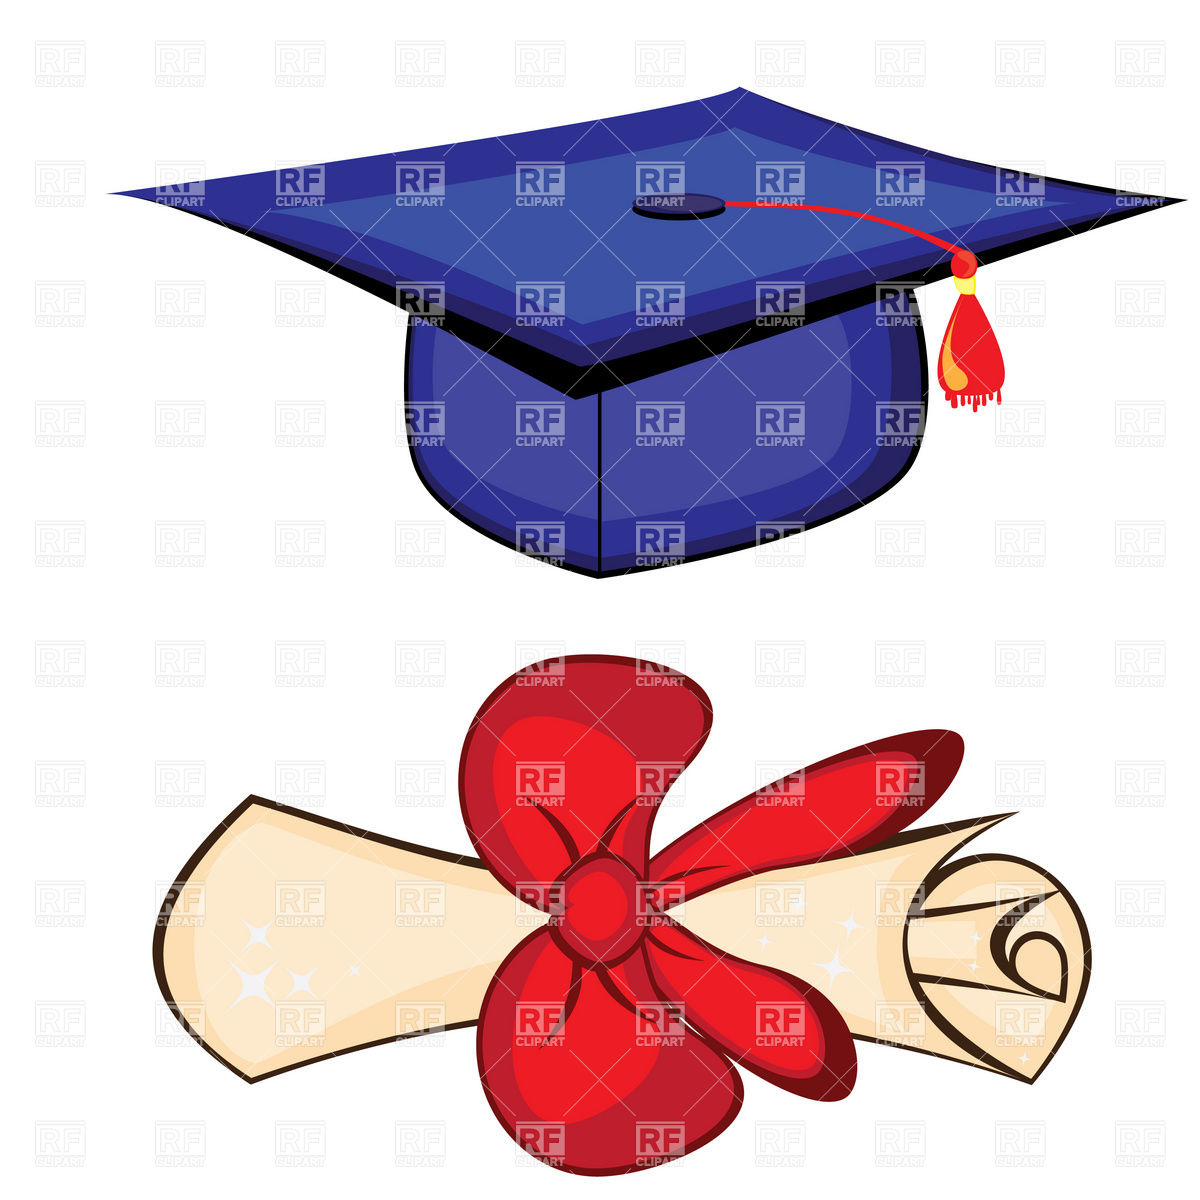 1200x1200 Diploma And Graduation Cap Vector Image Vector Artwork Of